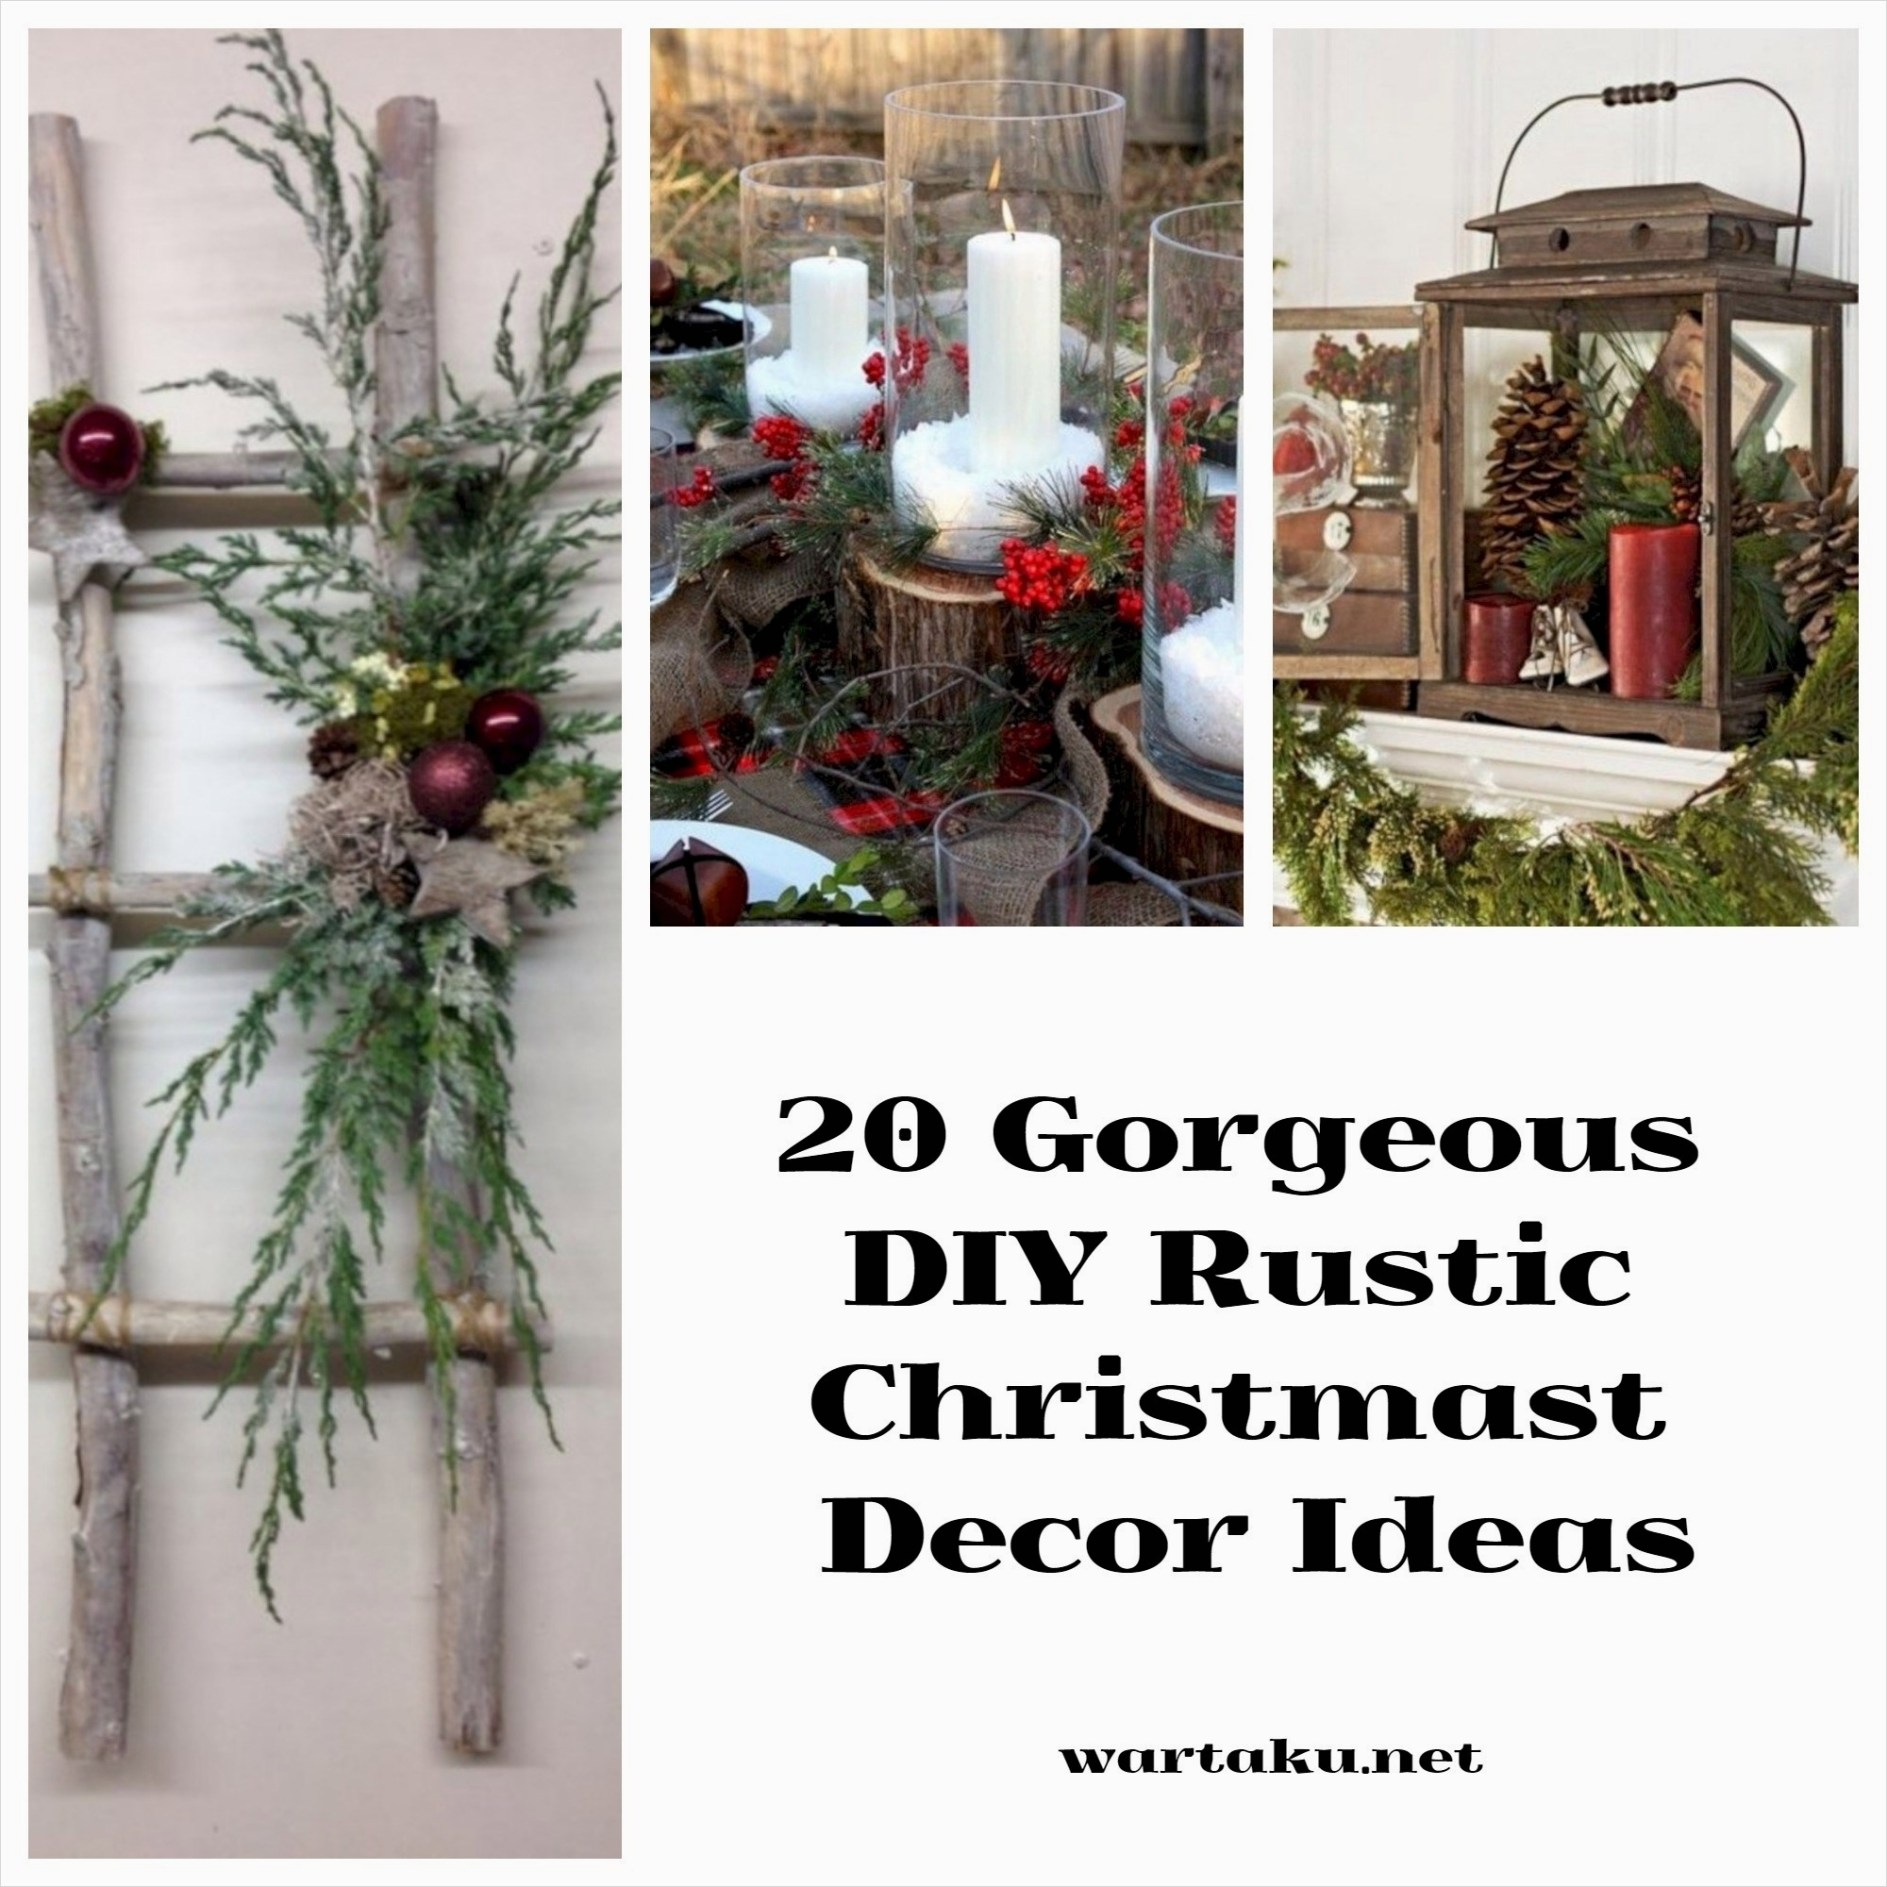 45 Diy Rustic Christmas Decorations 72 20 Gorgeous Diy Rustic Christmas Decor Ideas Wartaku 5